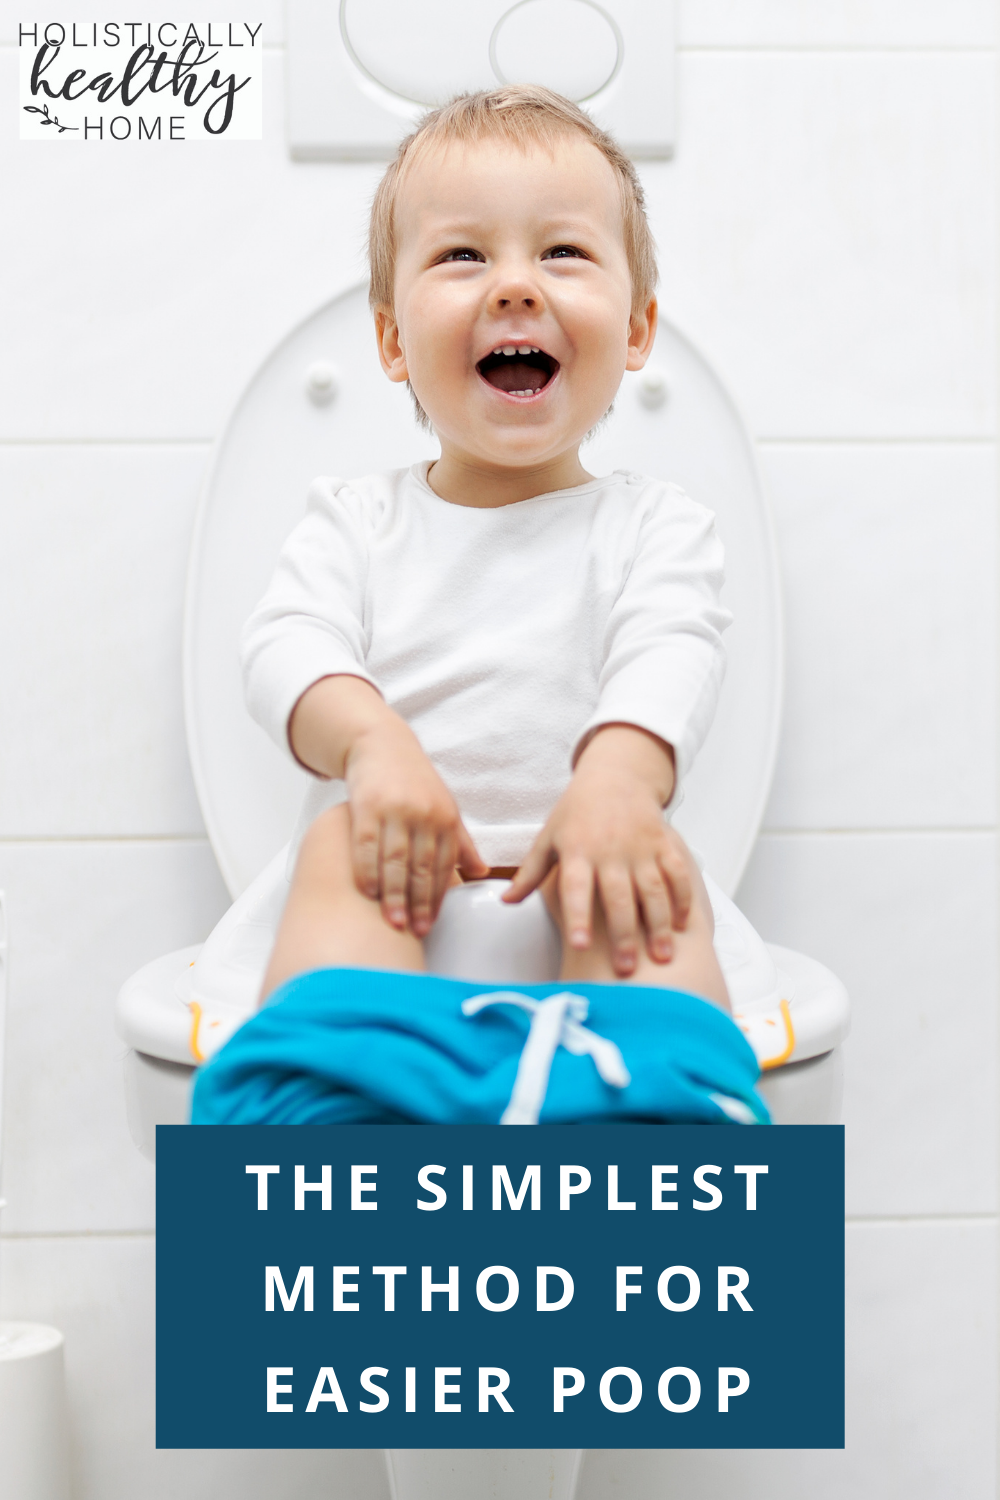 The simplest way to poop easier, faster, and better  #howtopoopwhenconstipated #howtopoopregularly #howtopoopfaster #poopingposition #squattypotty